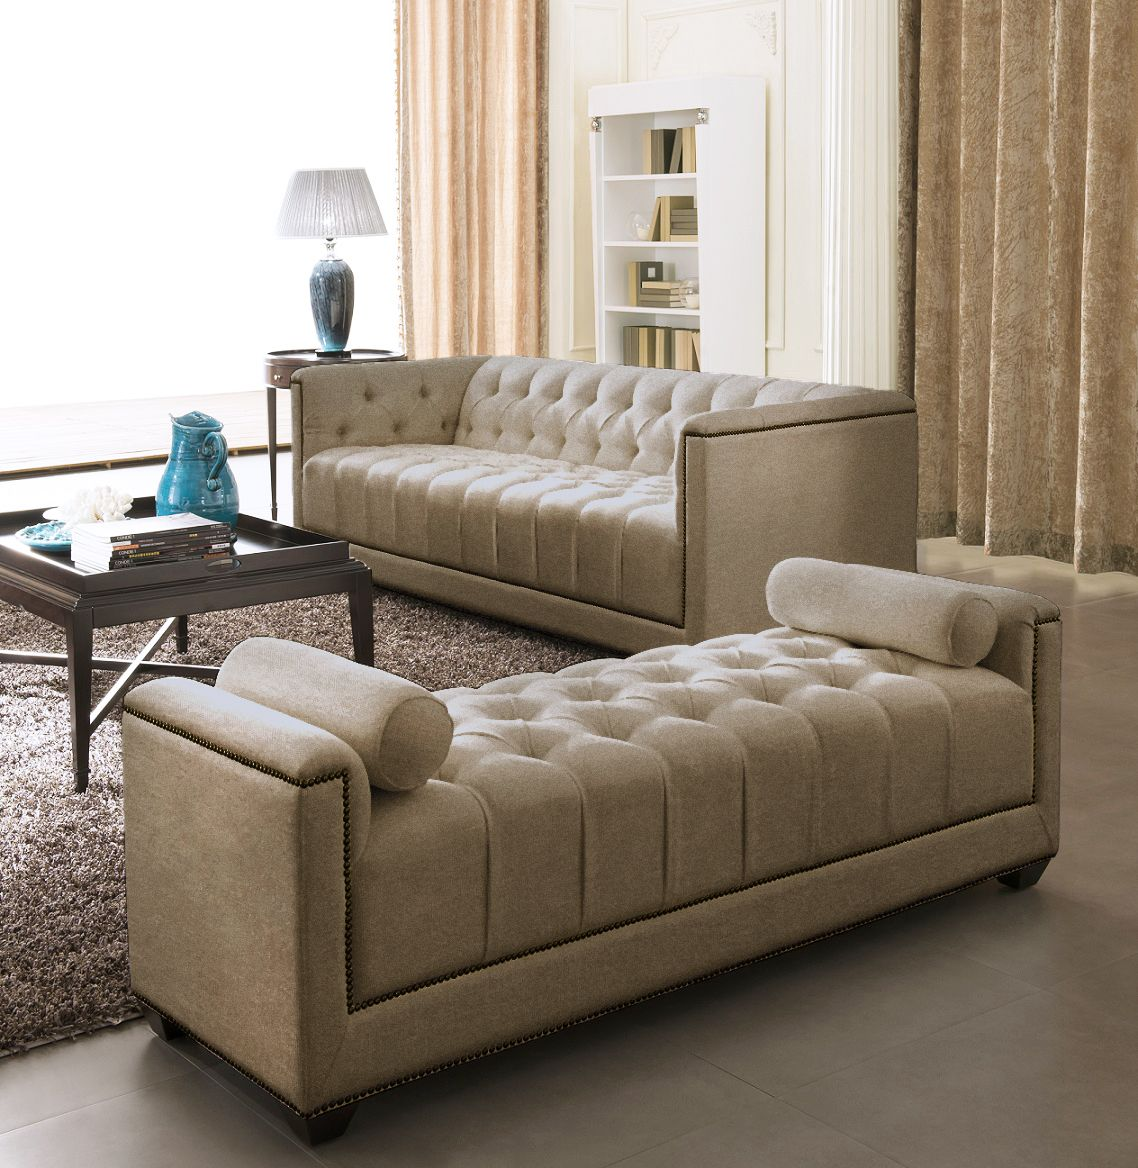 Latest Modern Sofa Set Various Styles And Designs 2016 Living Room Sofa Design Living Room Sofa Set Modern Sofa Set